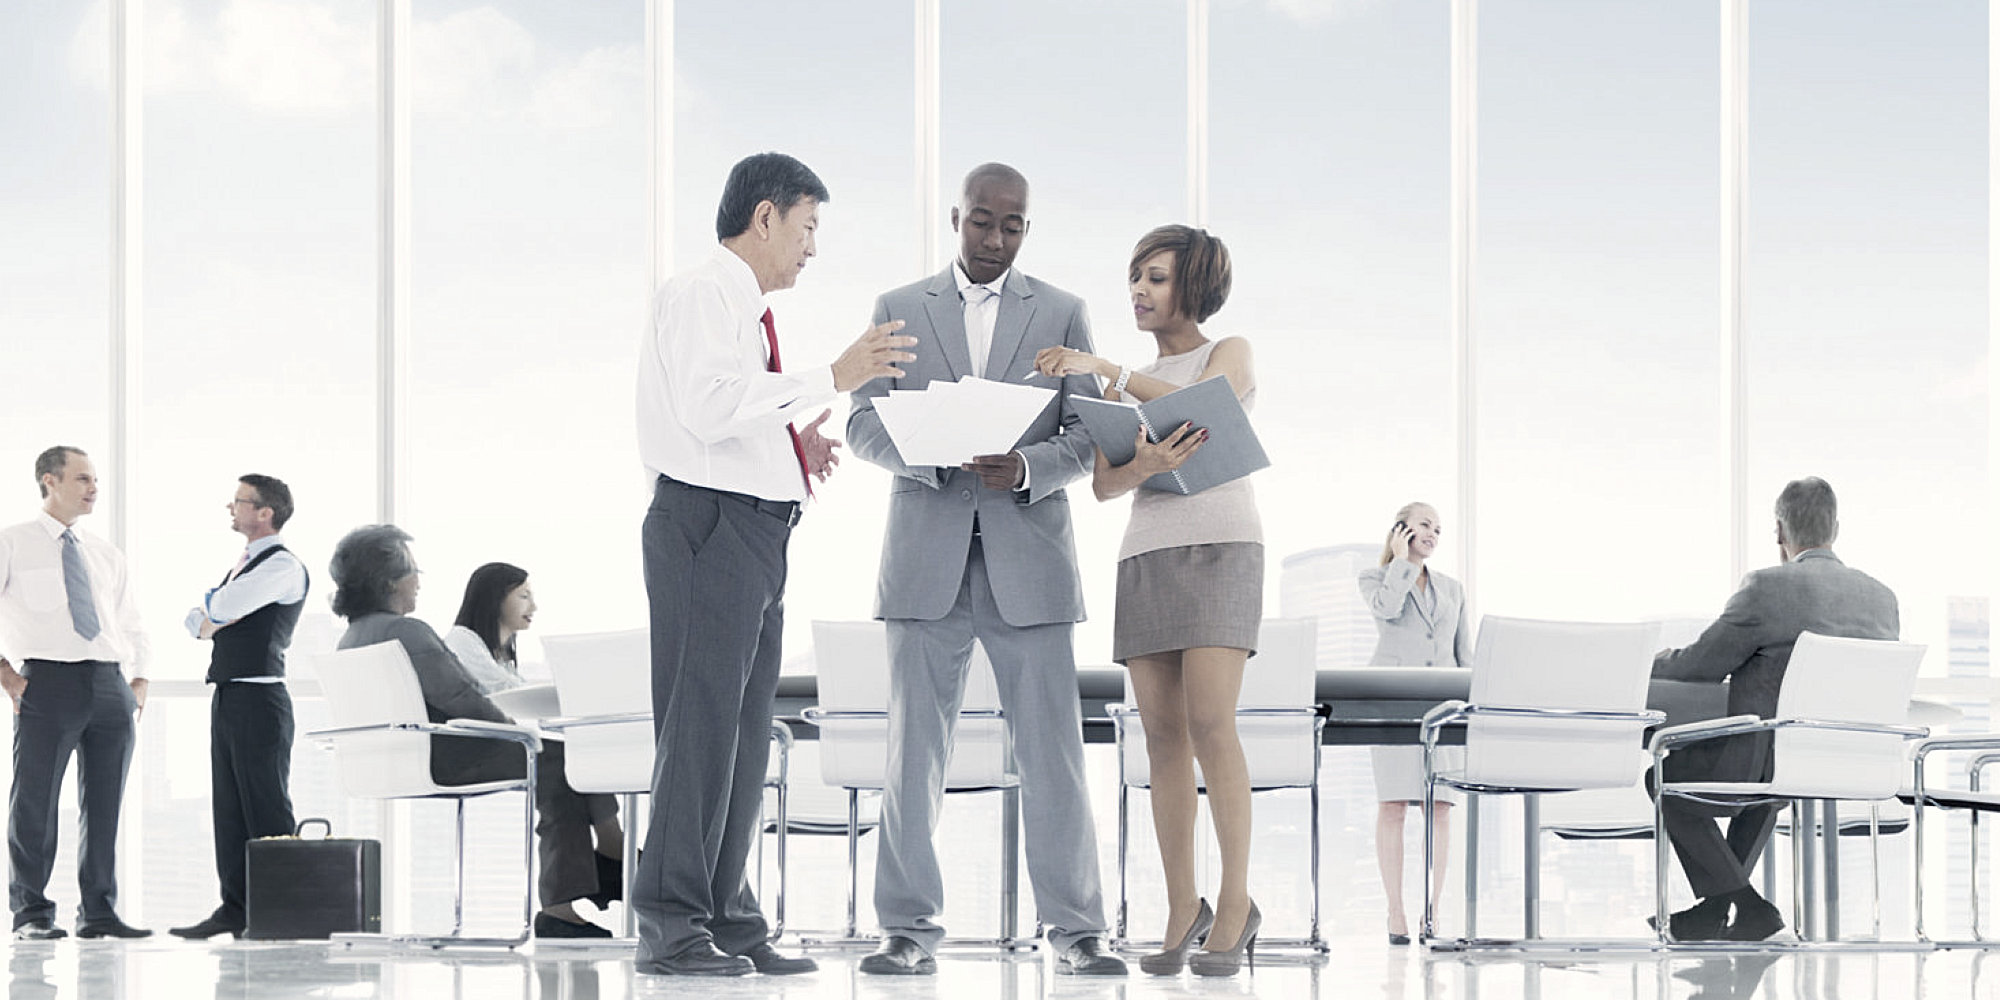 Business team discussing in the conference room